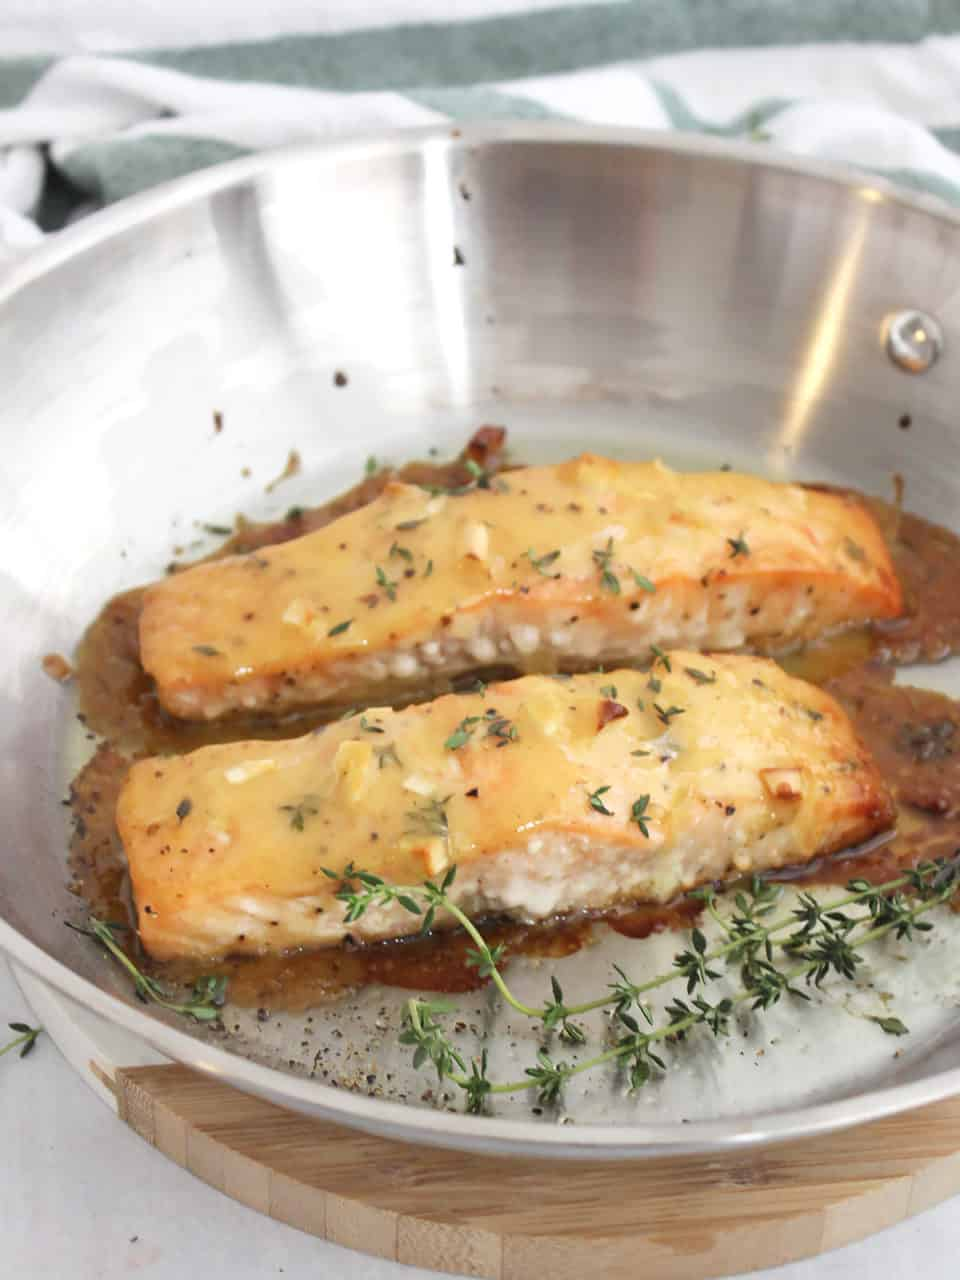 Two cooked salmon fillets in a metal skillet.